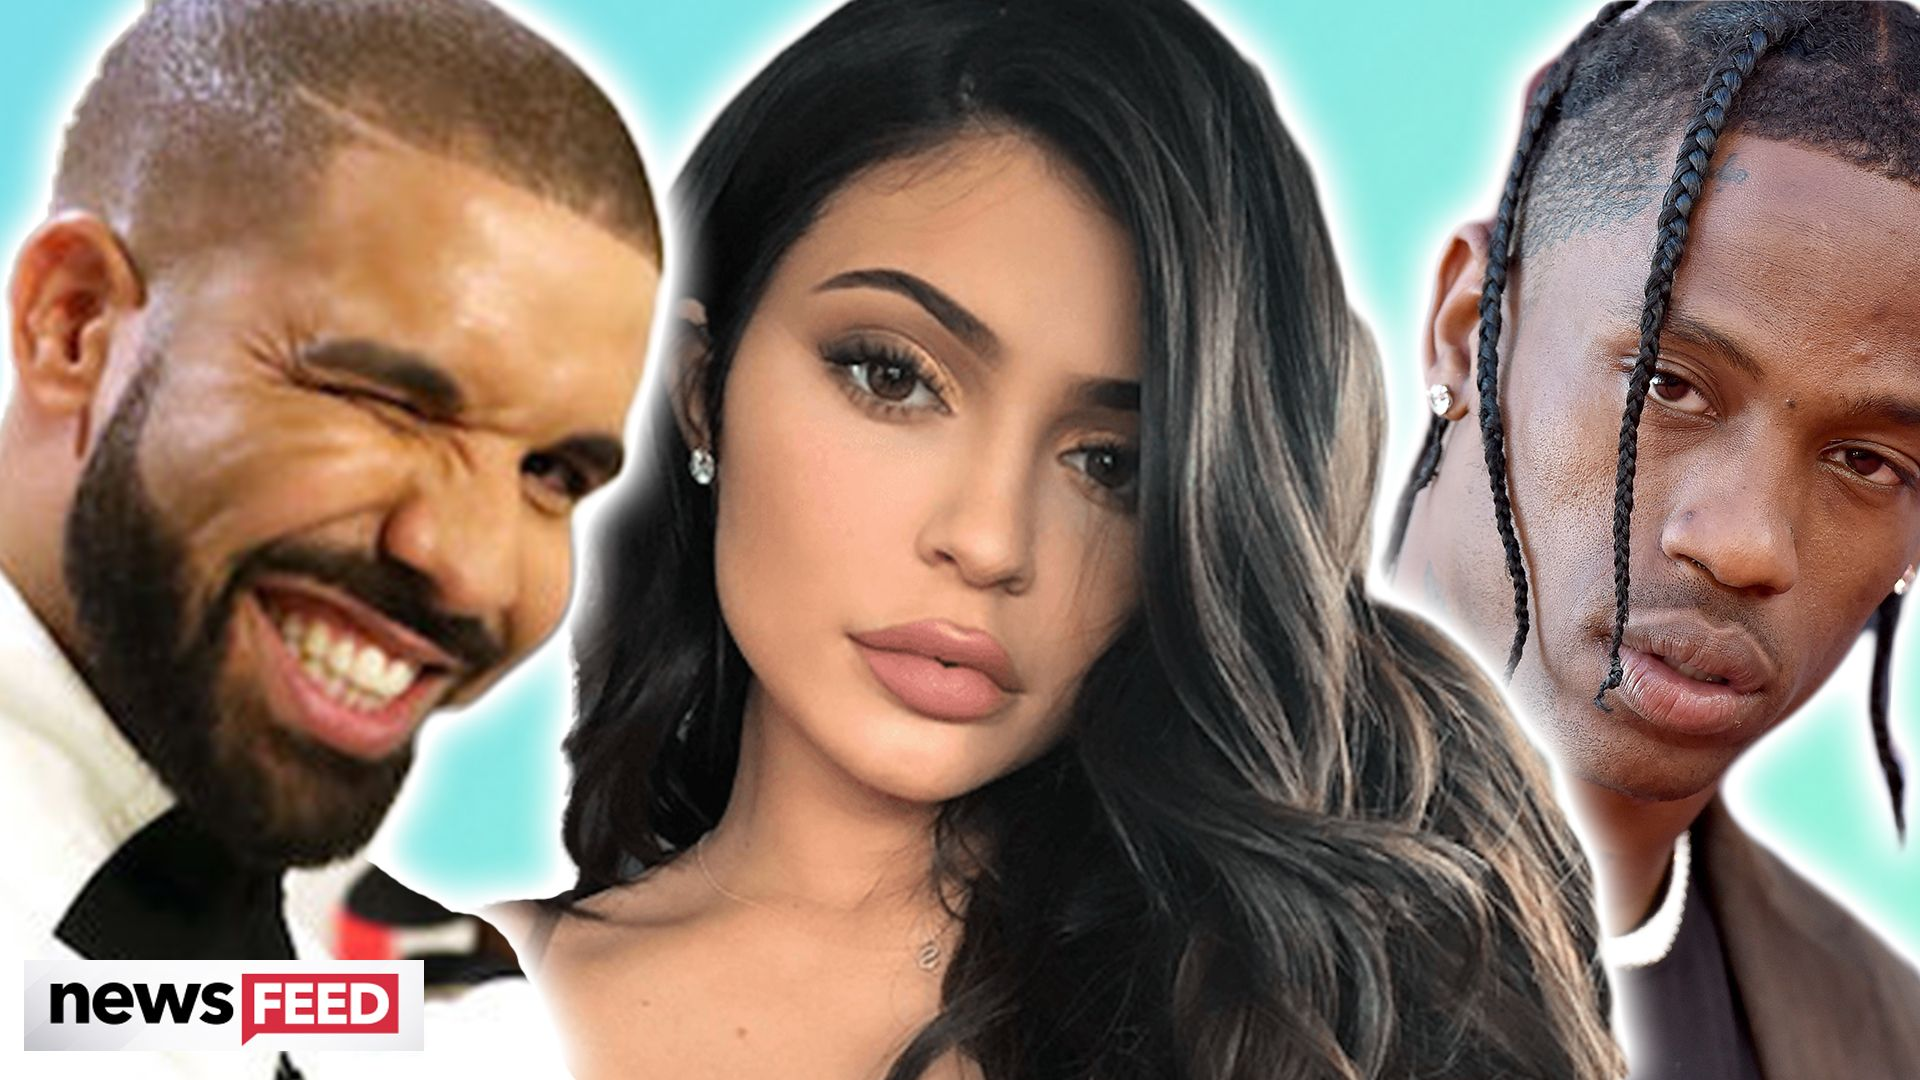 Um, Kylie Jenner Is Allegedly Seeing Drake to Make Travis Scott Jealous